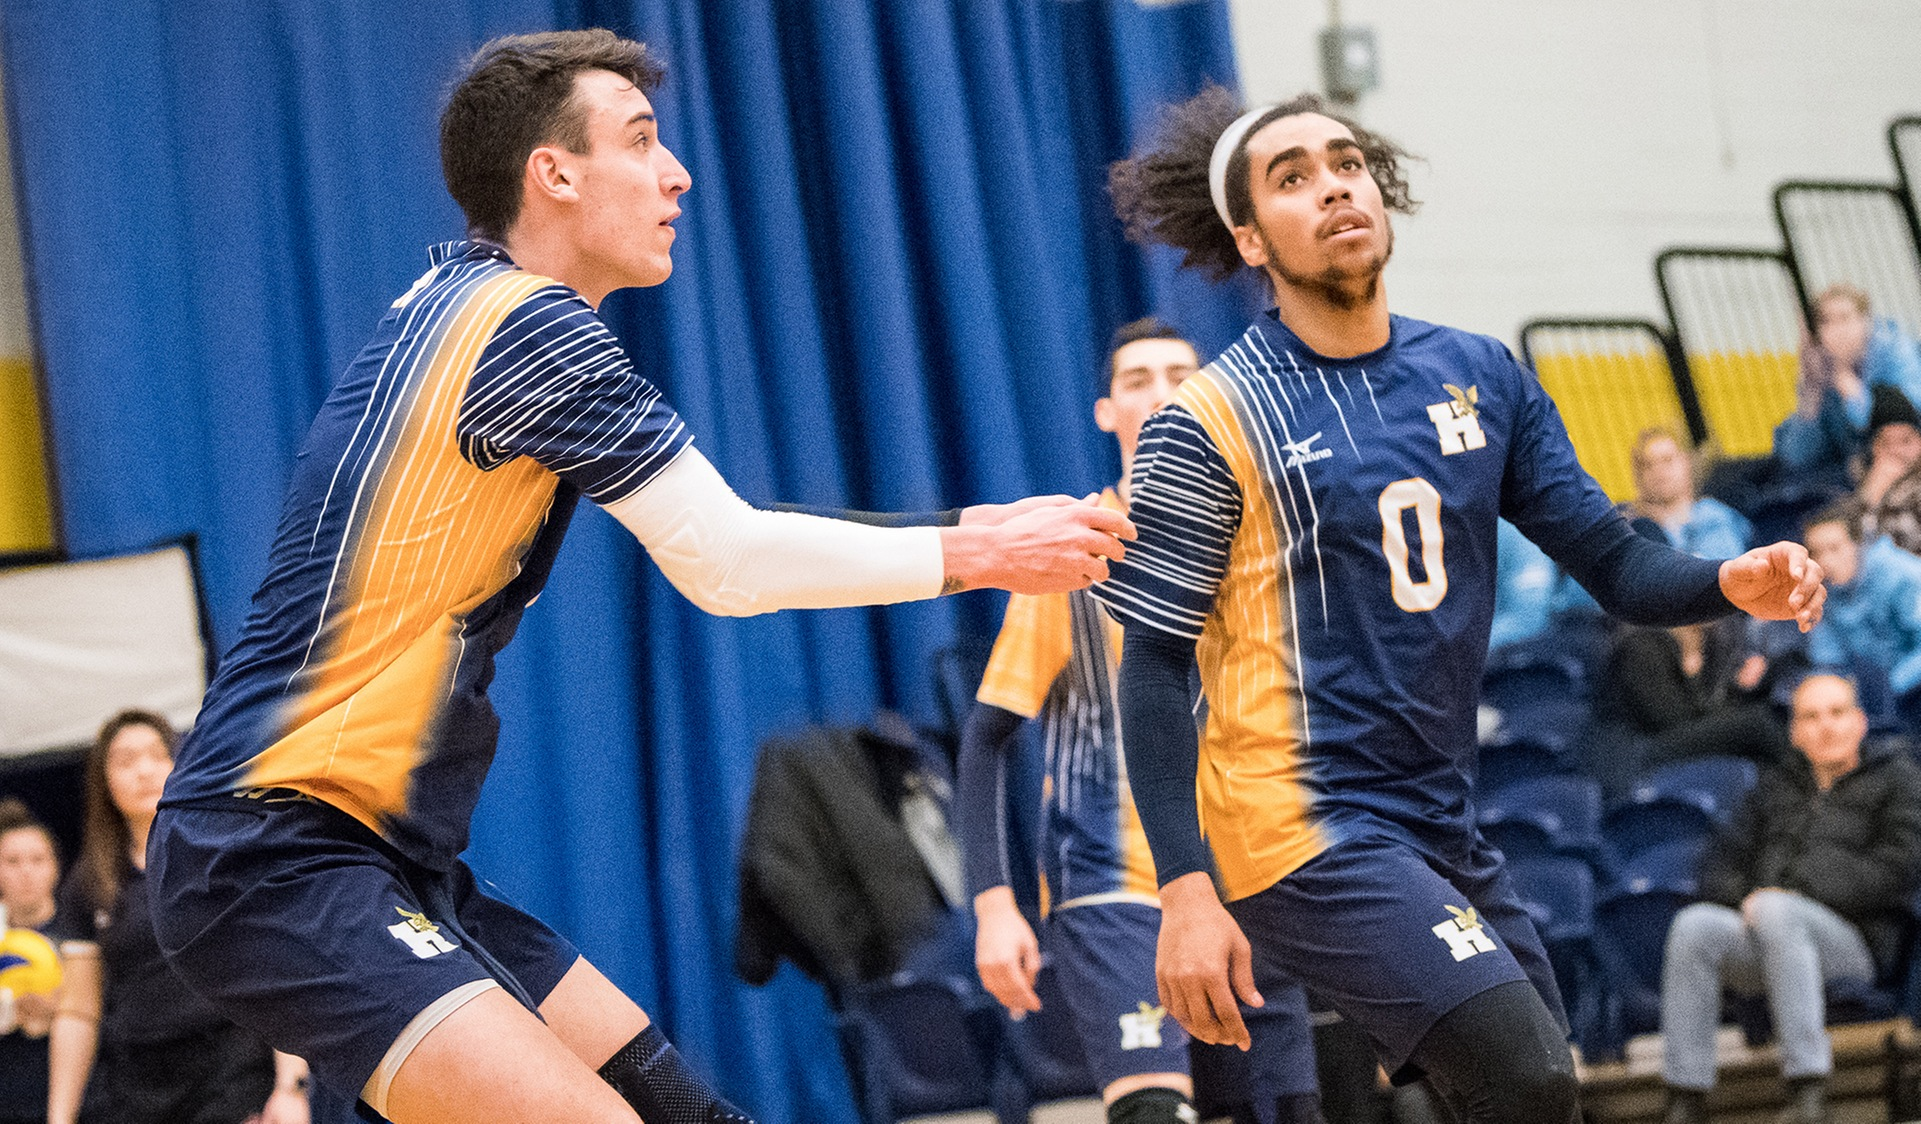 MEN'S VOLLEYBALL TAKE TO THE COURT FOR THREE PRE-SEASON GAMES THIS WEEKEND